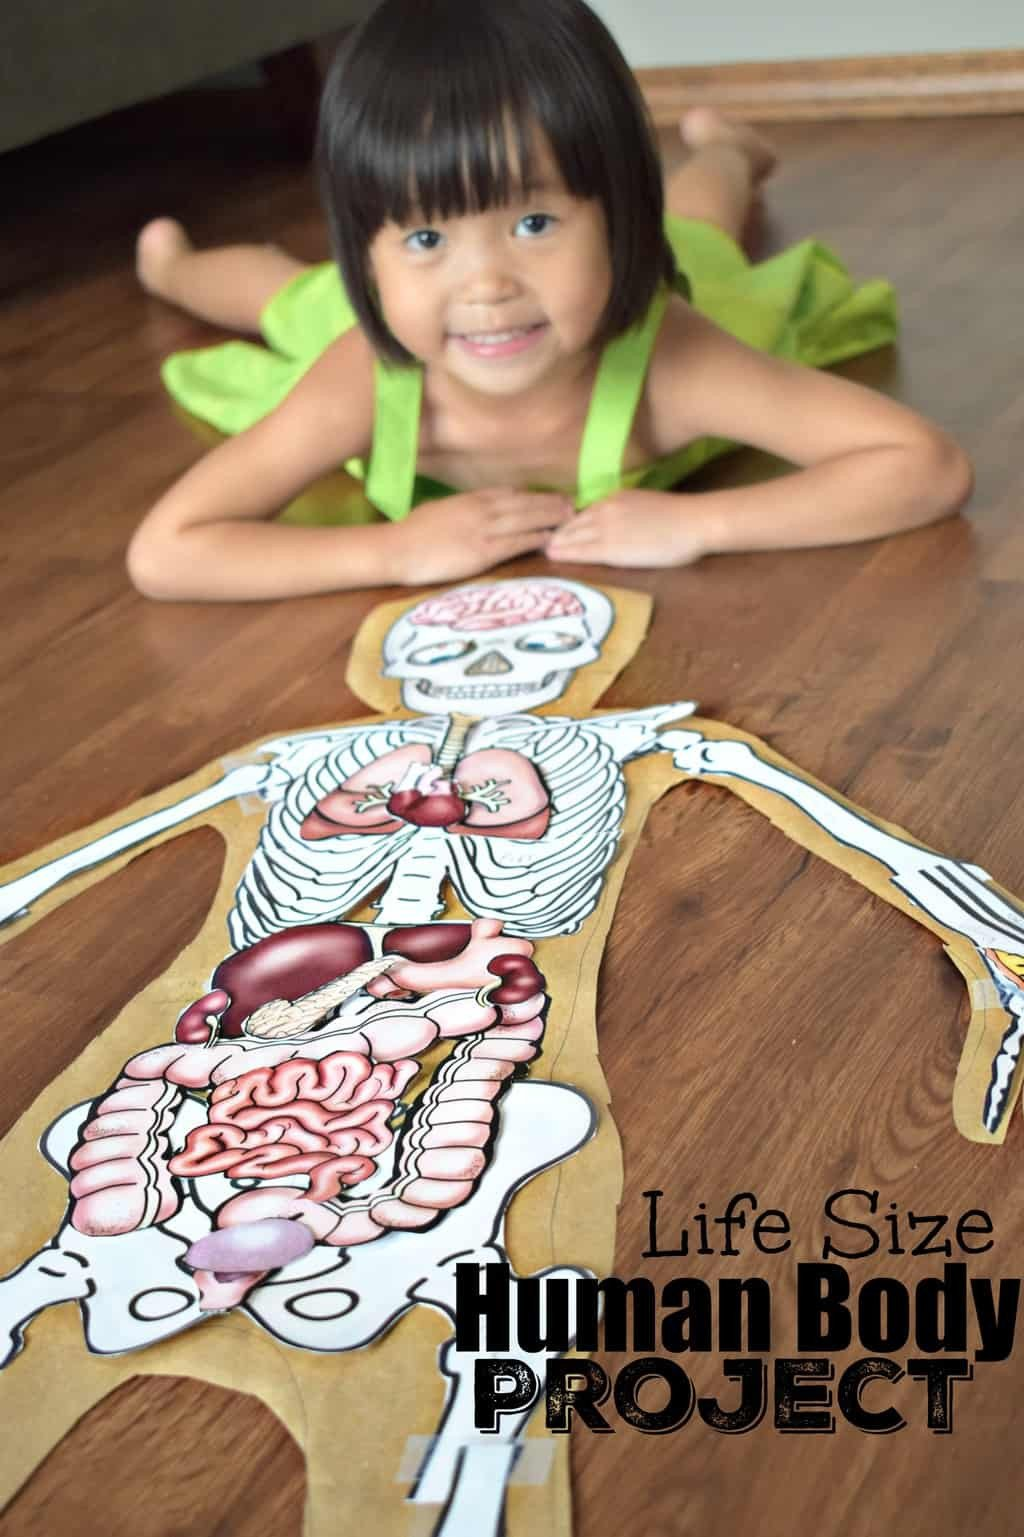 Free Human Body Systems Worksheets Human Body Project with Free Printables